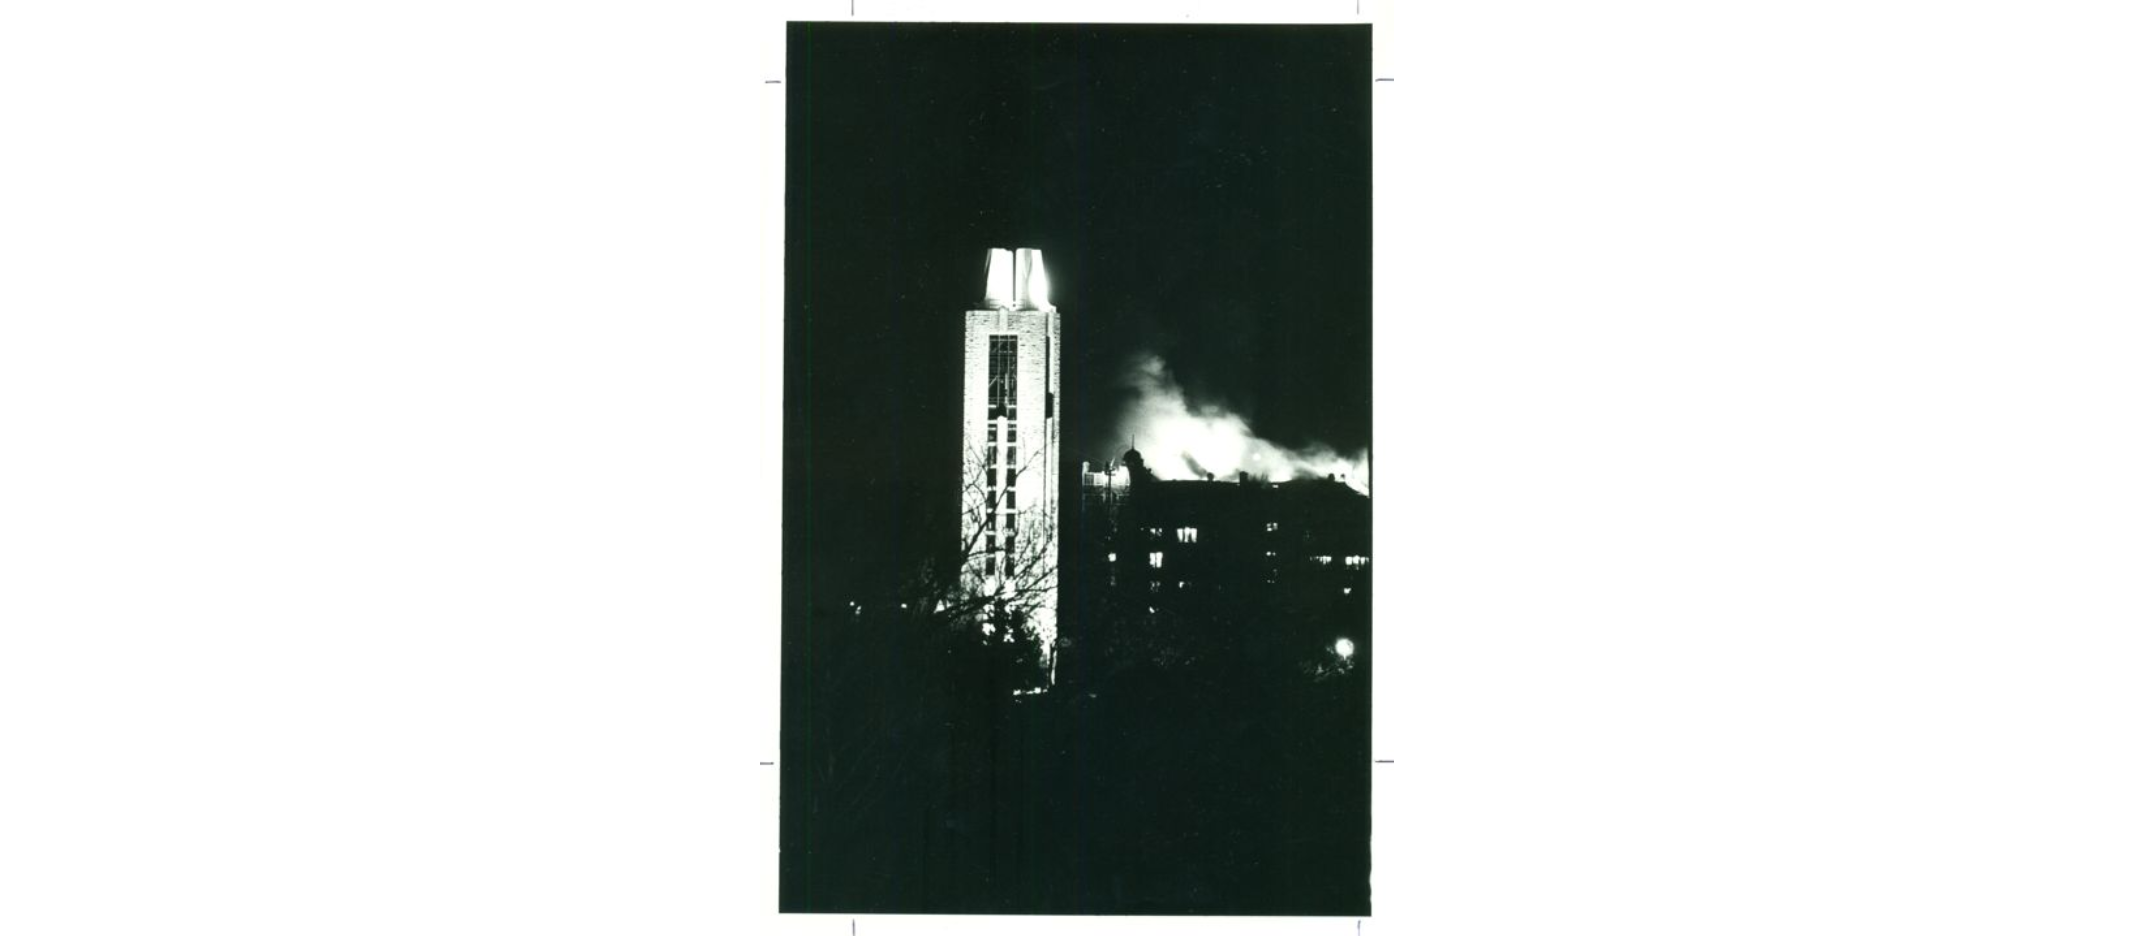 The Campanile stands in the foreground of the photograph while smoke and flames rise from the Union in the background.